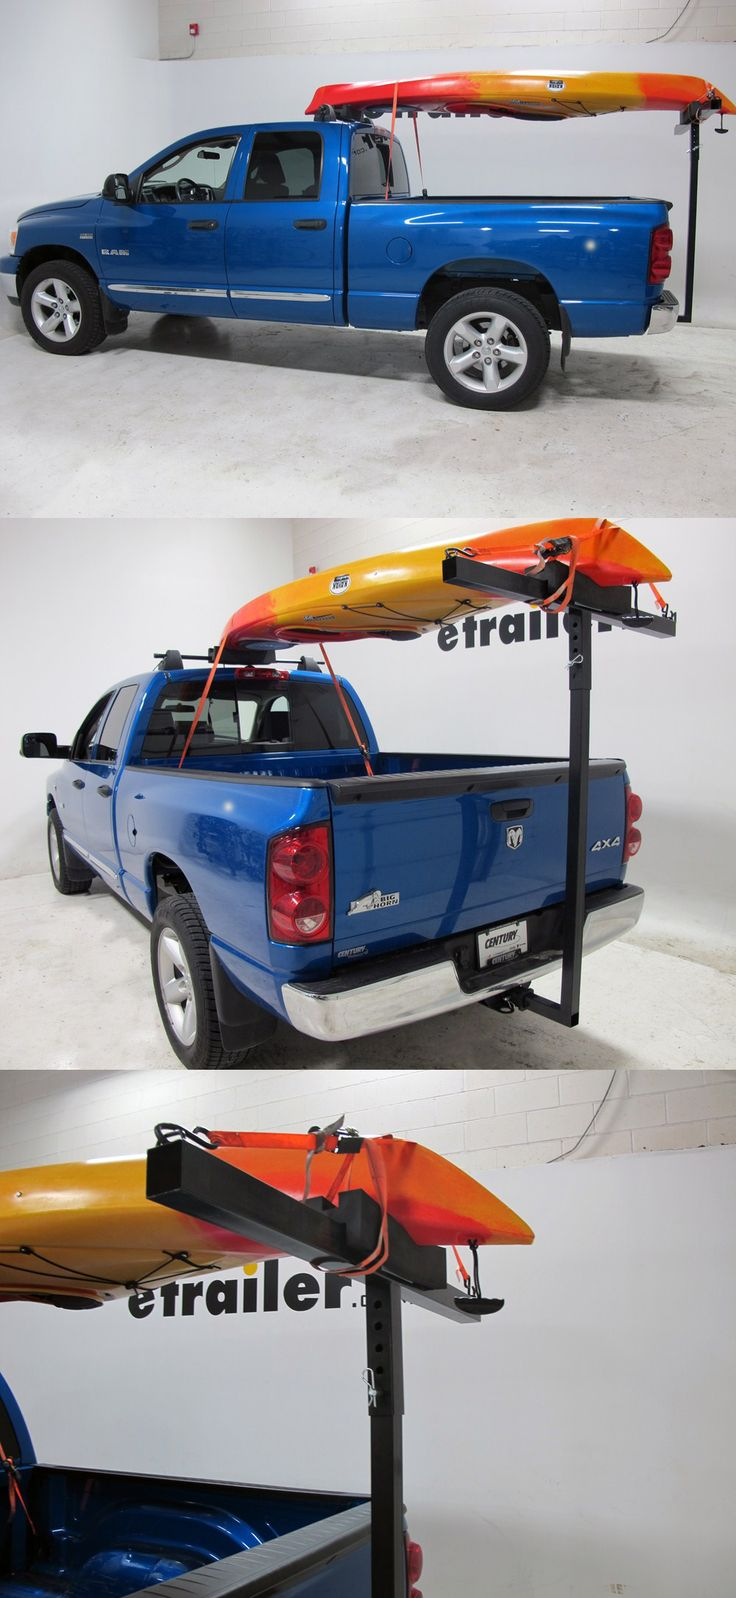 Carry a canoe or kayak safely and securely on your pickup truck - the darby extend-a-truck kayak carrier with hitch mounted load extender. When it comes to truck accessories for water lovers this is a necessity. Get to and from the water in no time.